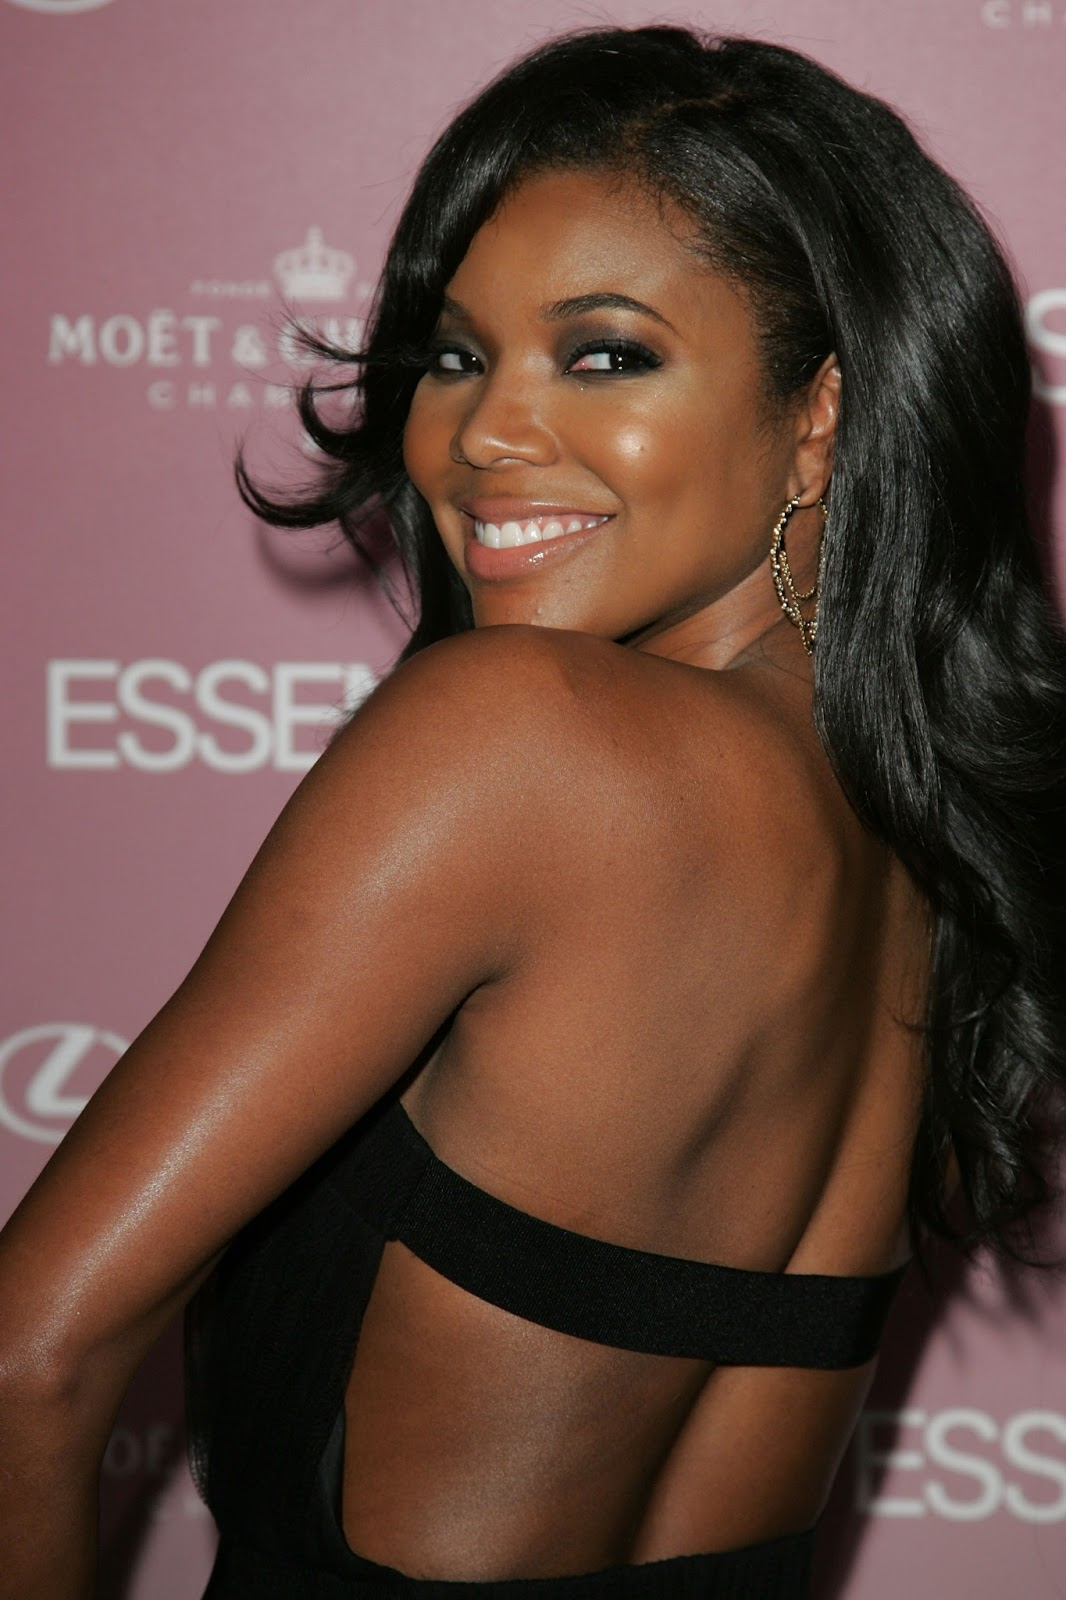 Gabrielle Union Hot Hd Wallpapers High Resolution Pictures